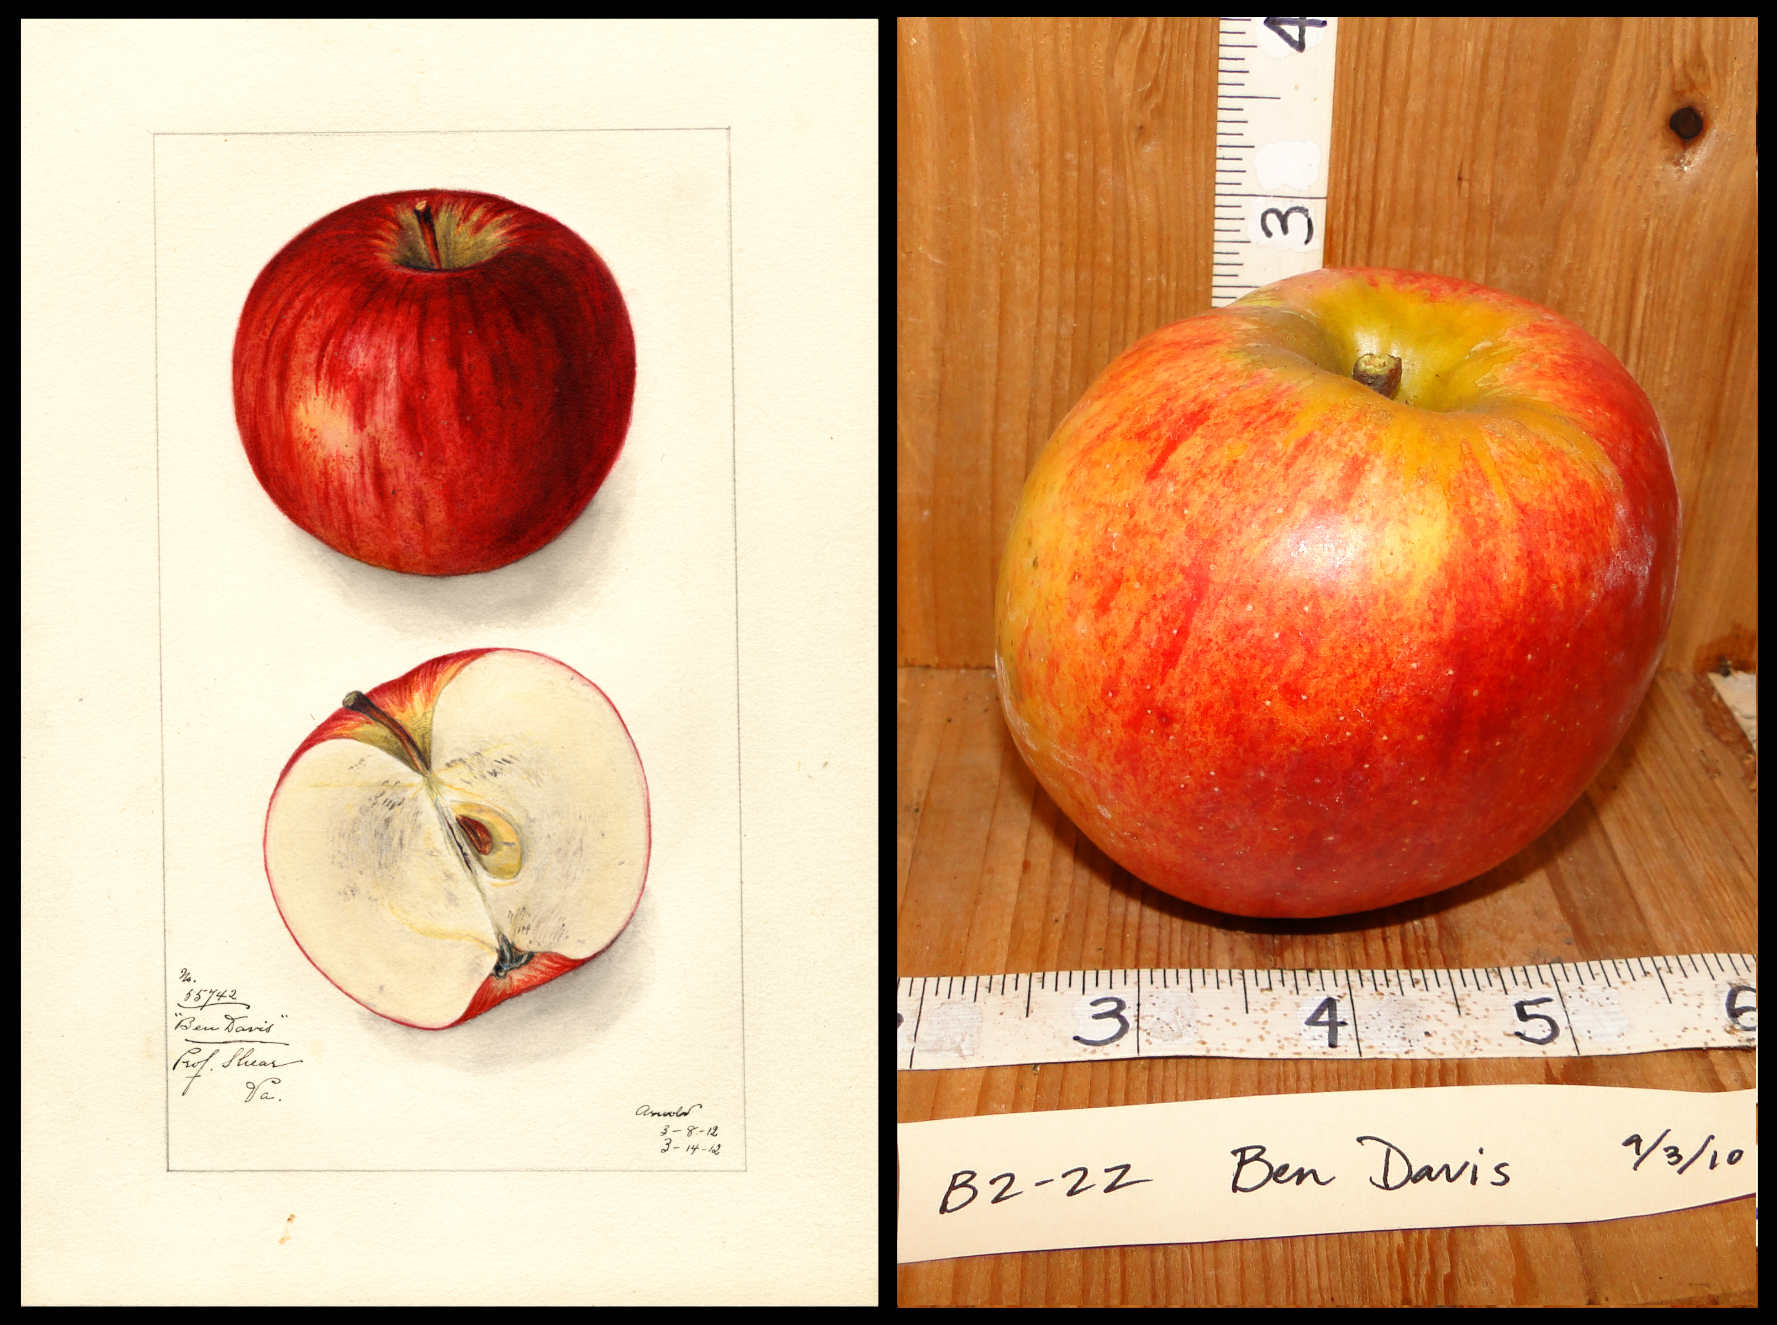 mottled red and yellow apple